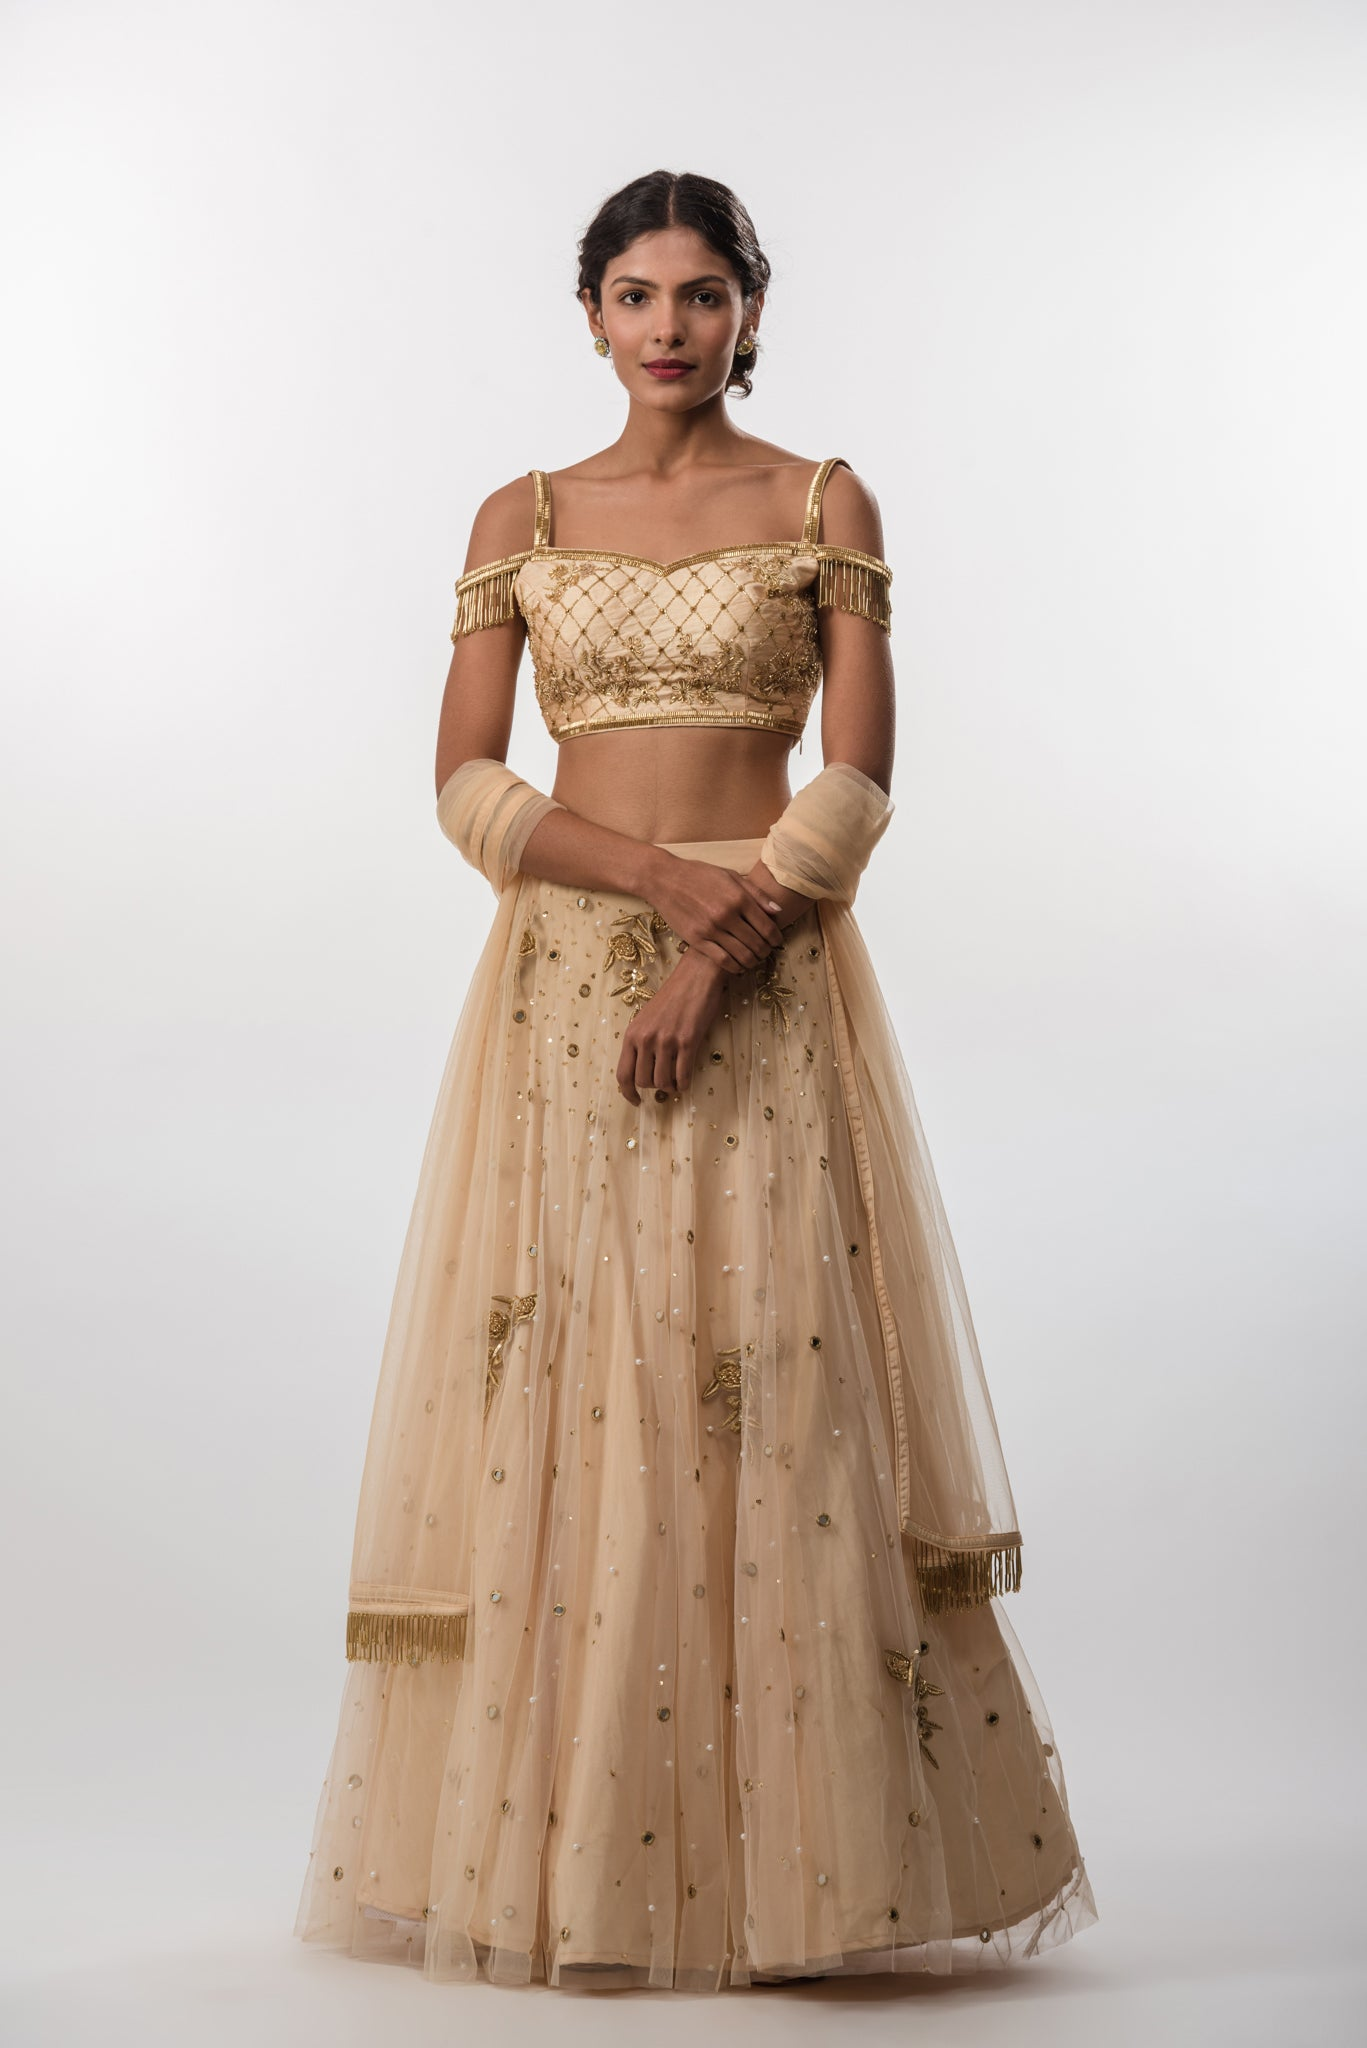 Tuscan Gold Sequins And Resham Embroidered Lehenga Skirt Freeverse